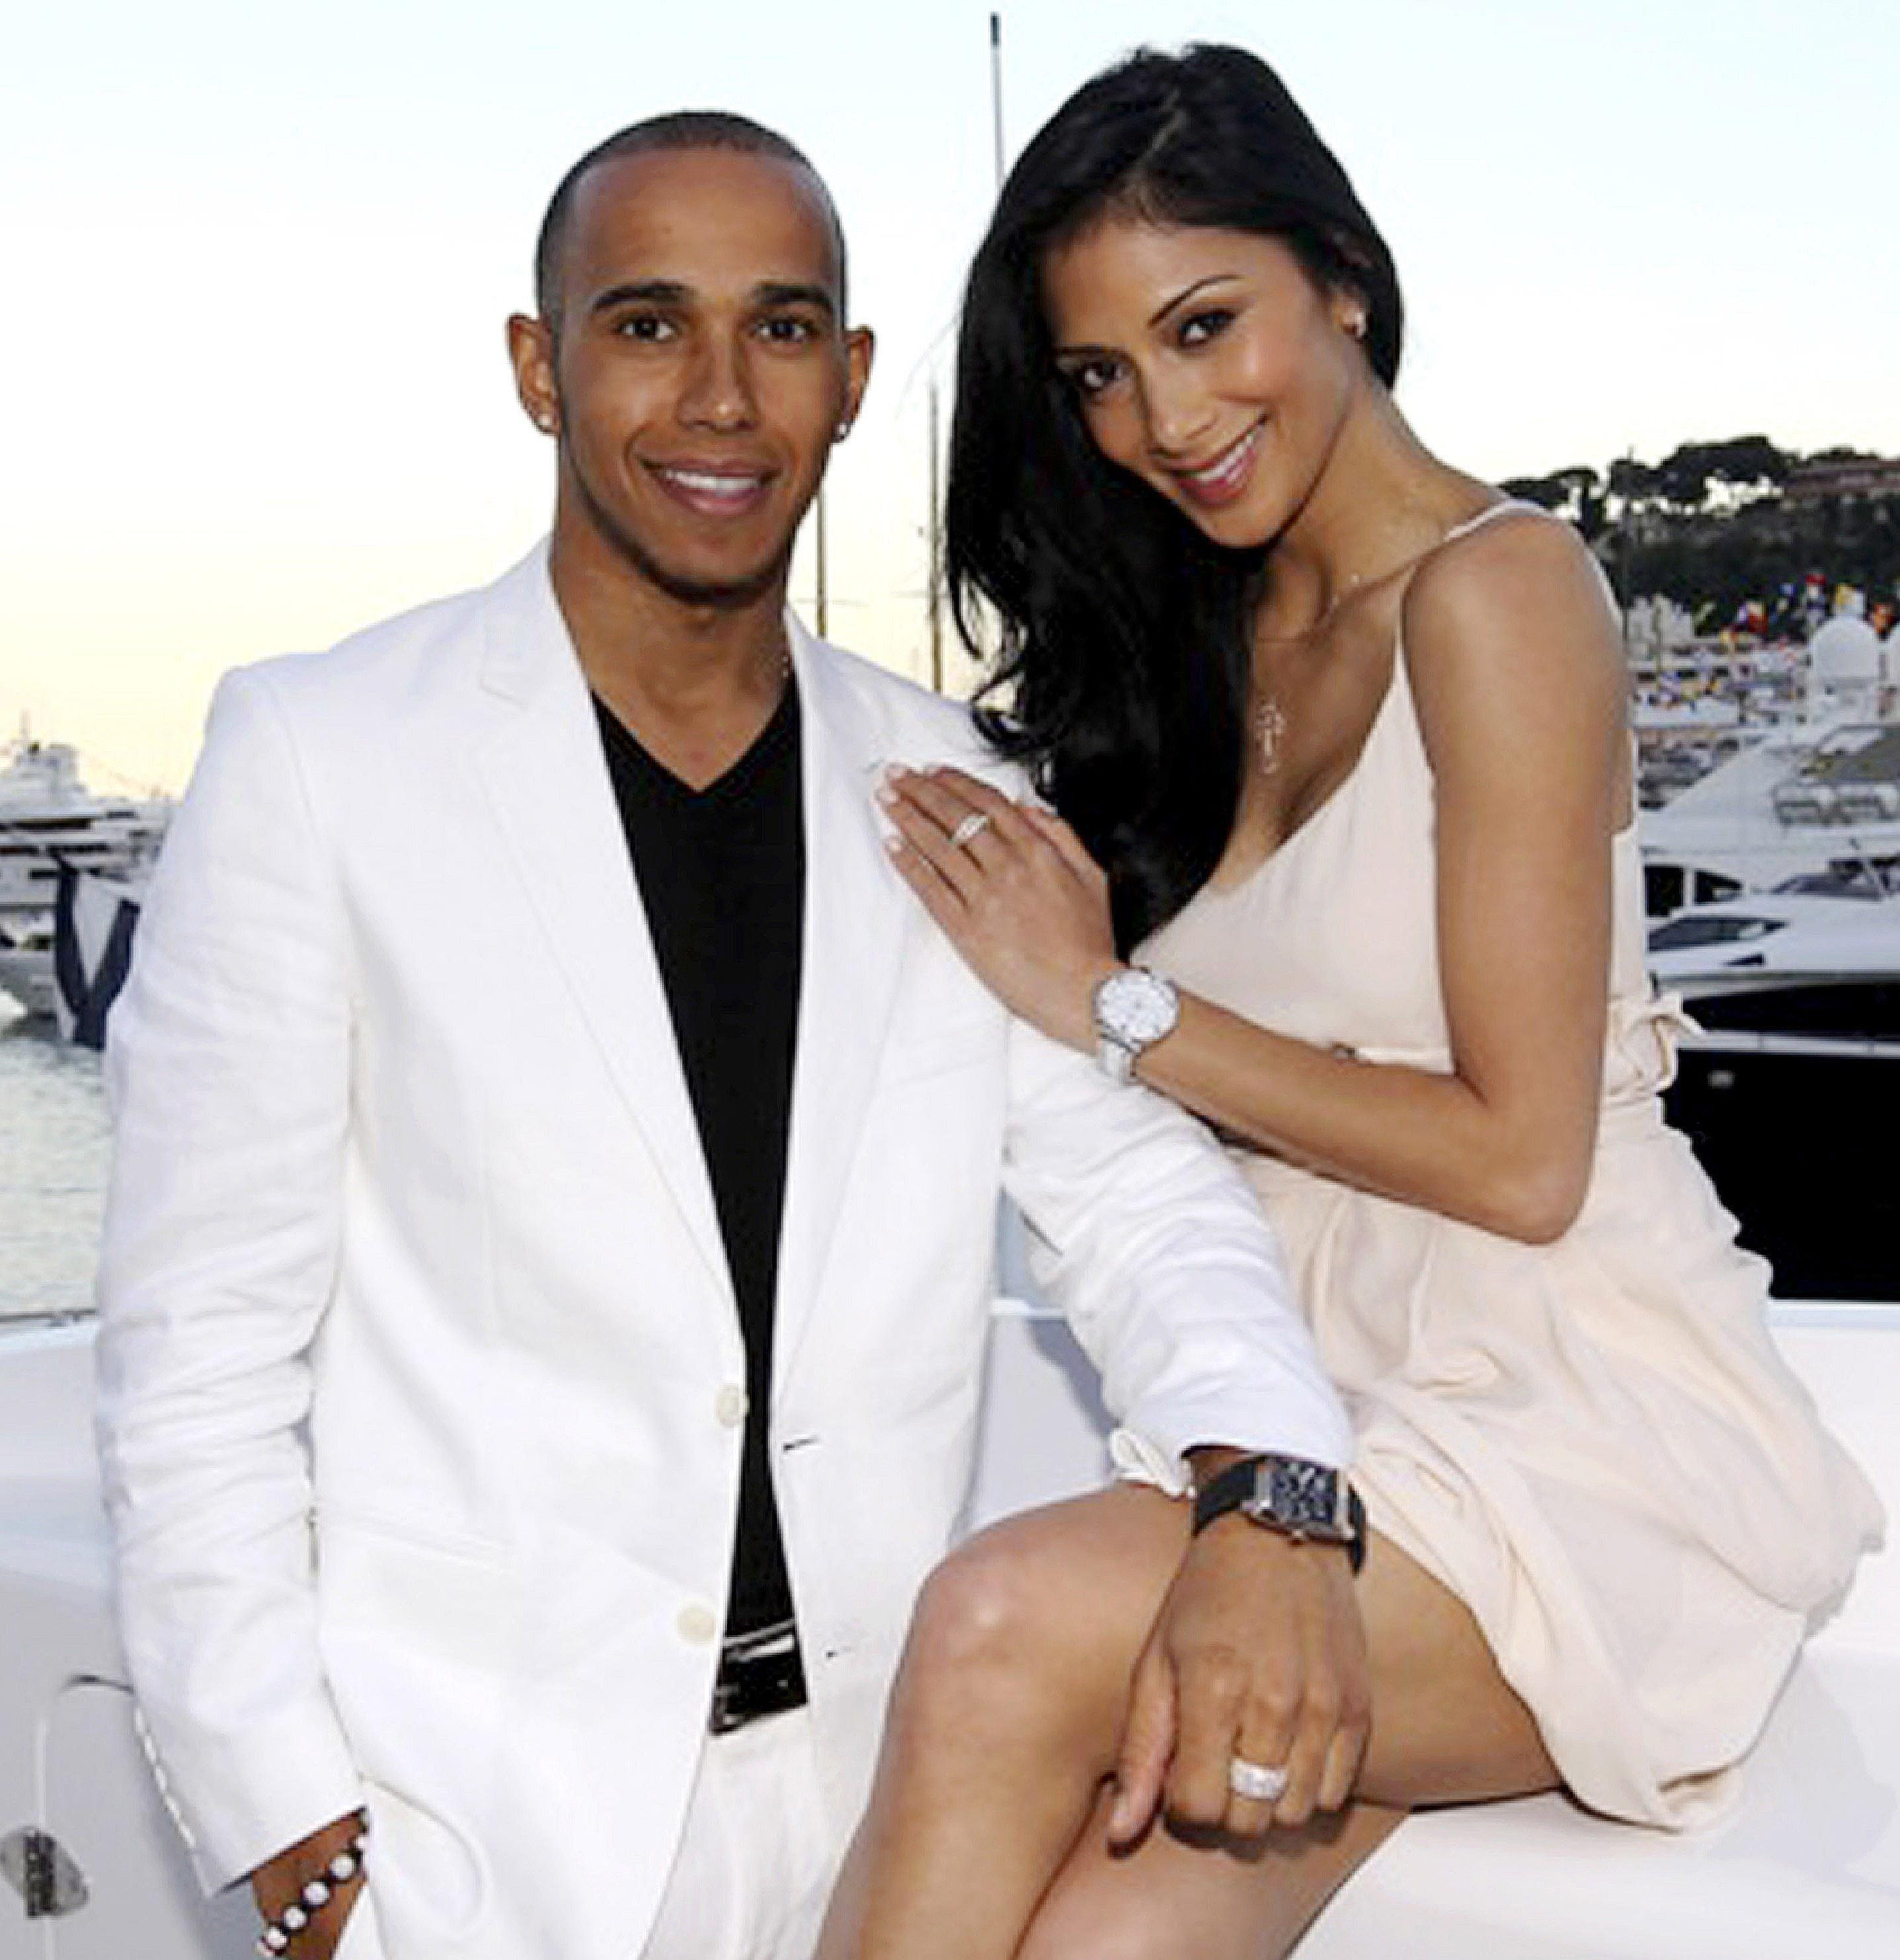 His family thought Lewis had found the one in Nicole, but they split after eight years